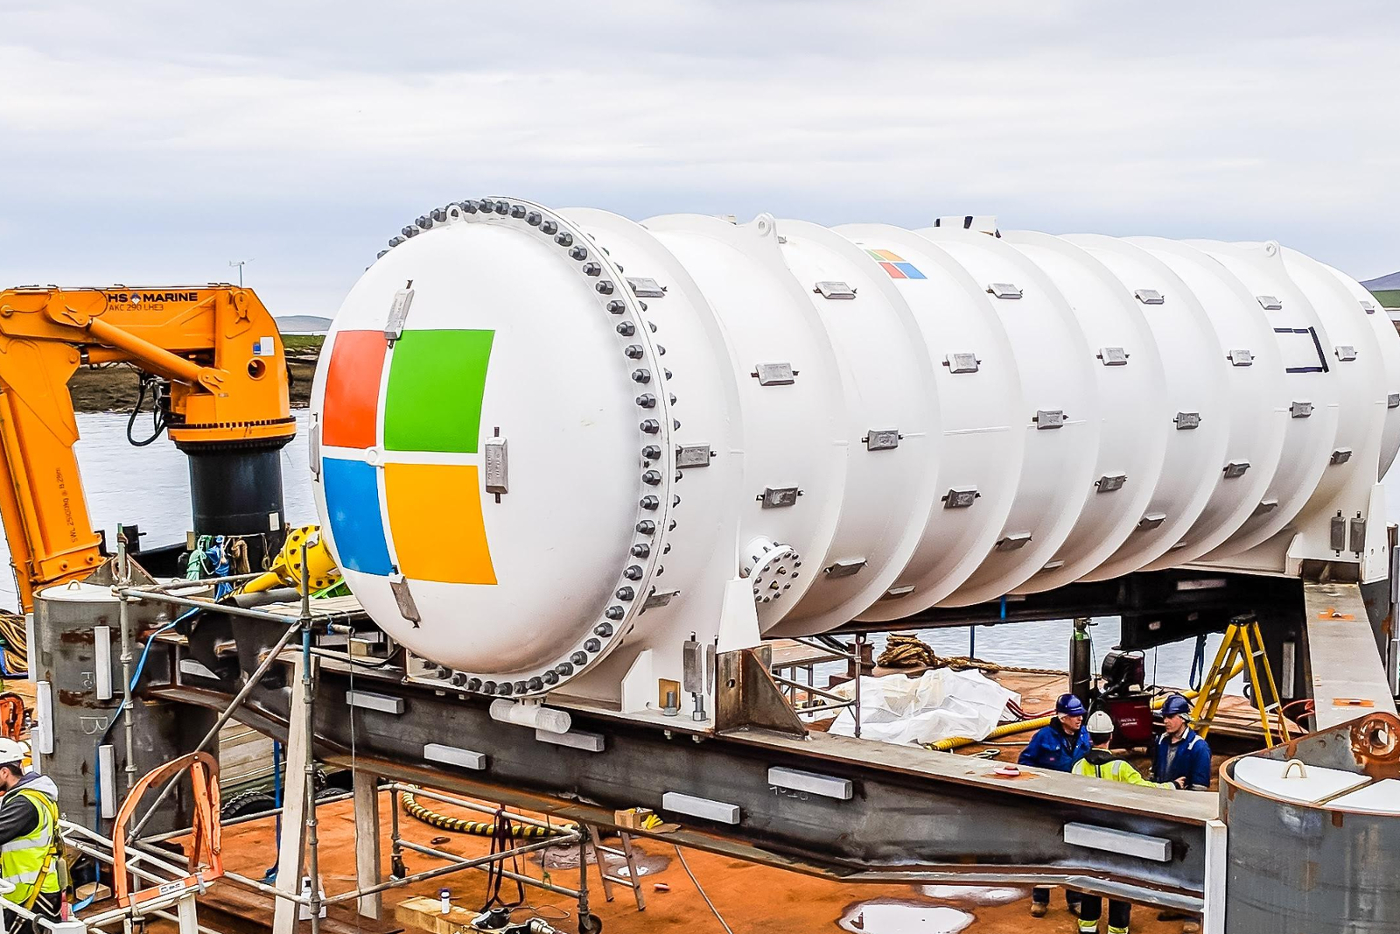 Why Microsoft wants to put data centers at the bottom of the ocean deployment